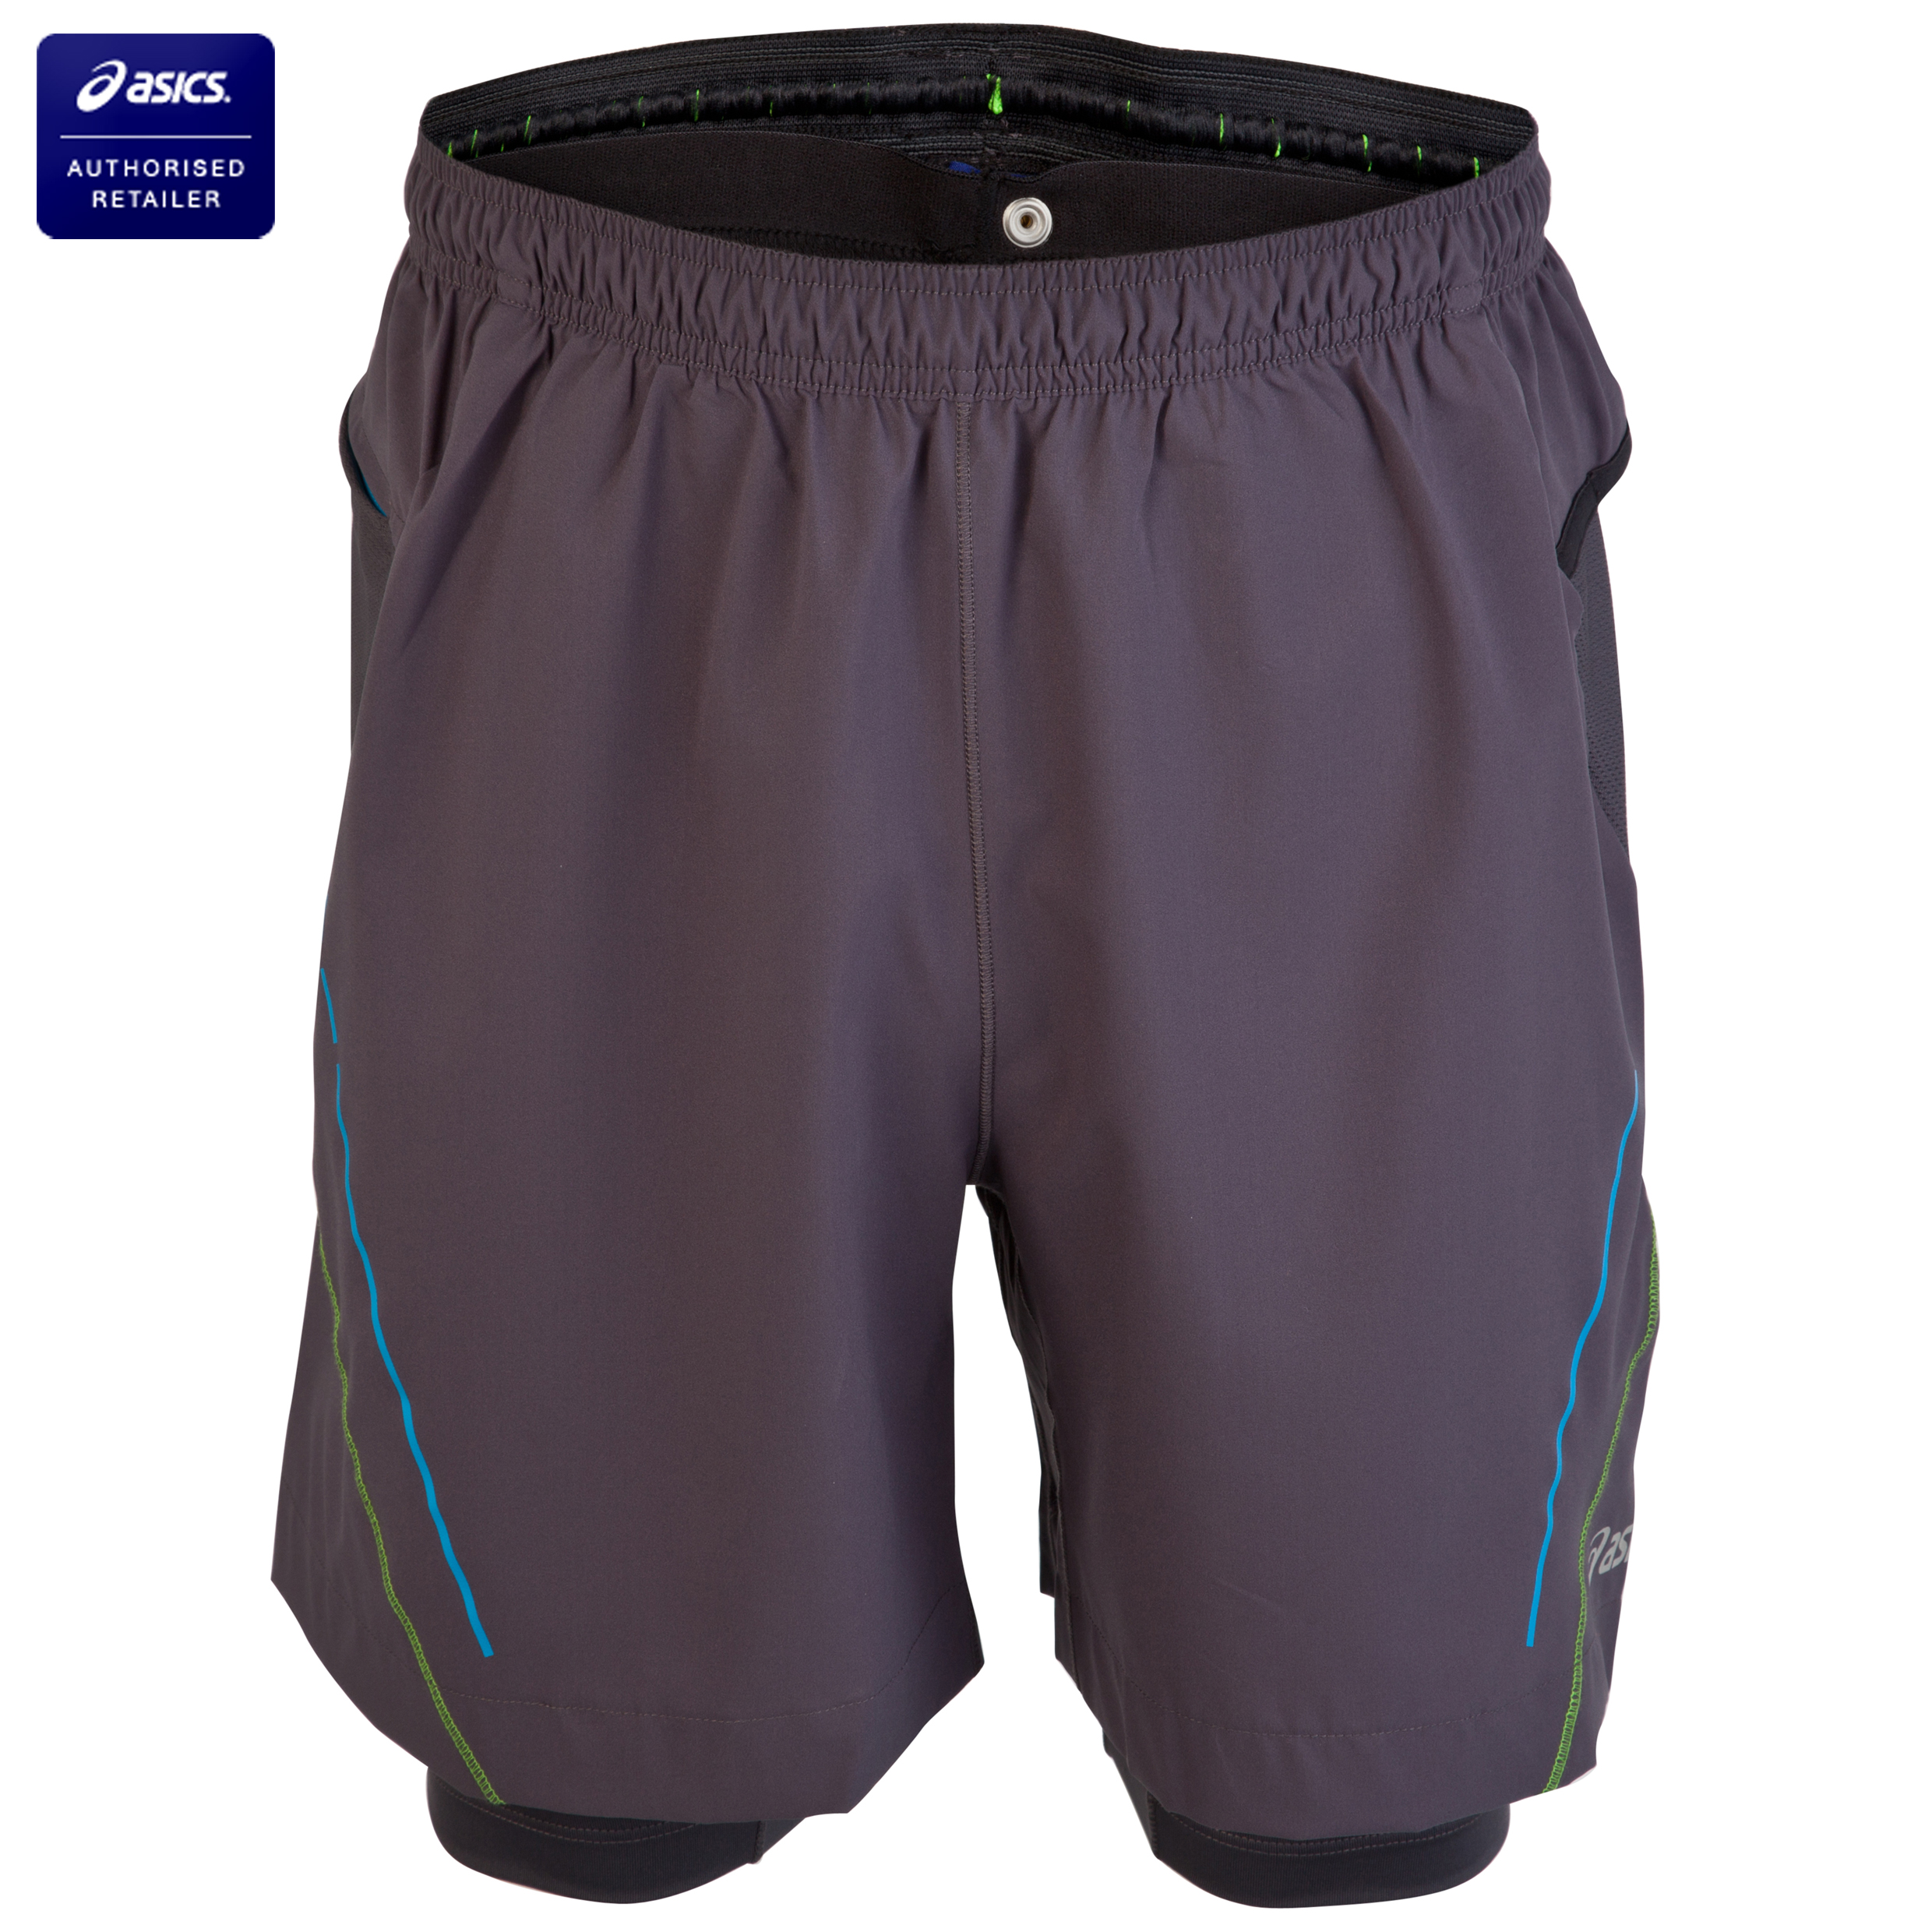 Asics Trail 2-in-1 Shorts - Iron